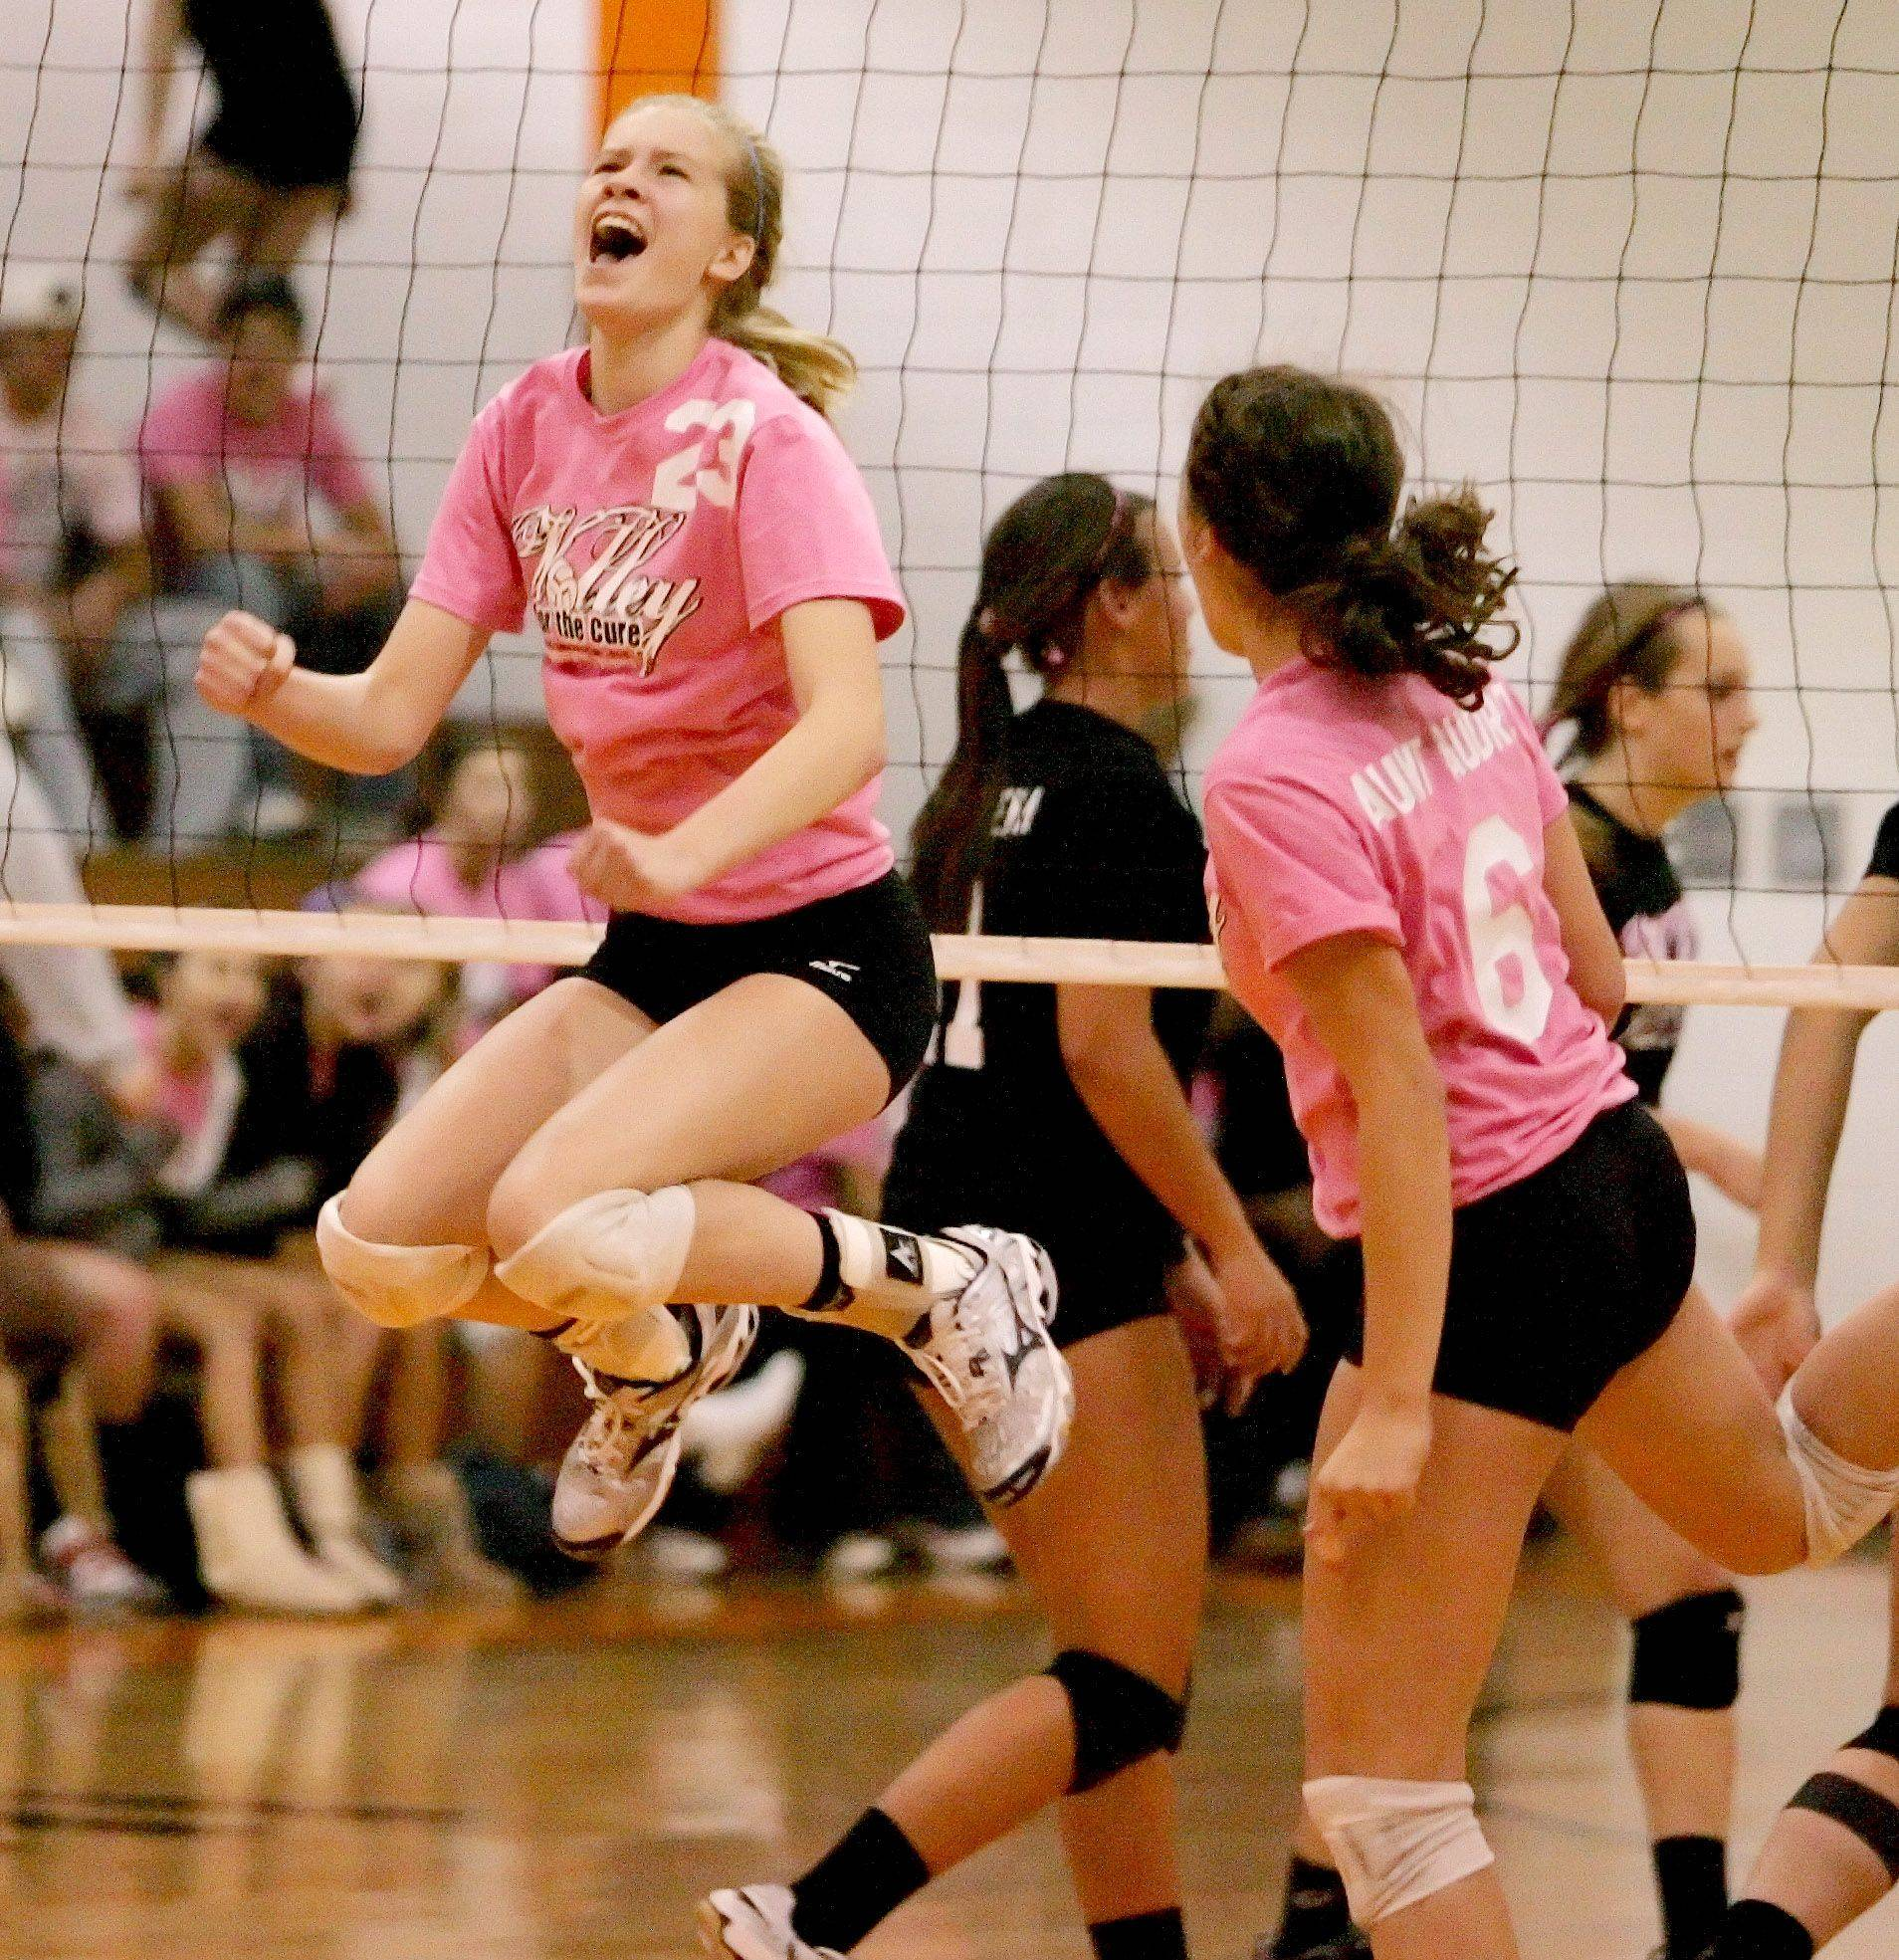 Sammy Condon of Naperville Central leaps into the air celebrating a point won against Wheaton Warrenville South during girls volleyball action Tuesday in Wheaton.